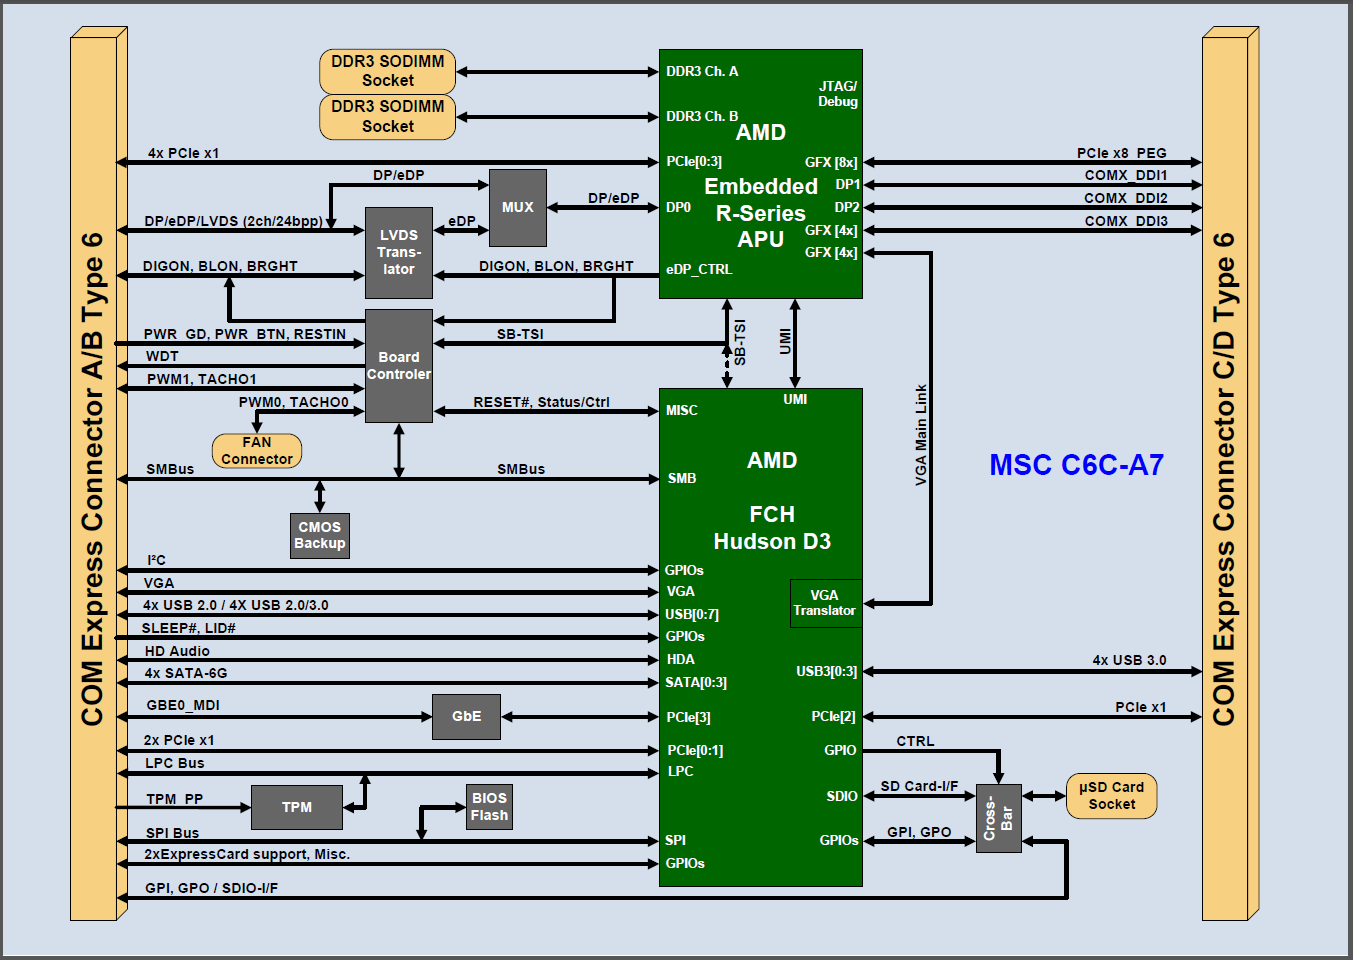 Figure 2: Block diagram of the MSC C6C-A7 CPU module with digital display interfaces